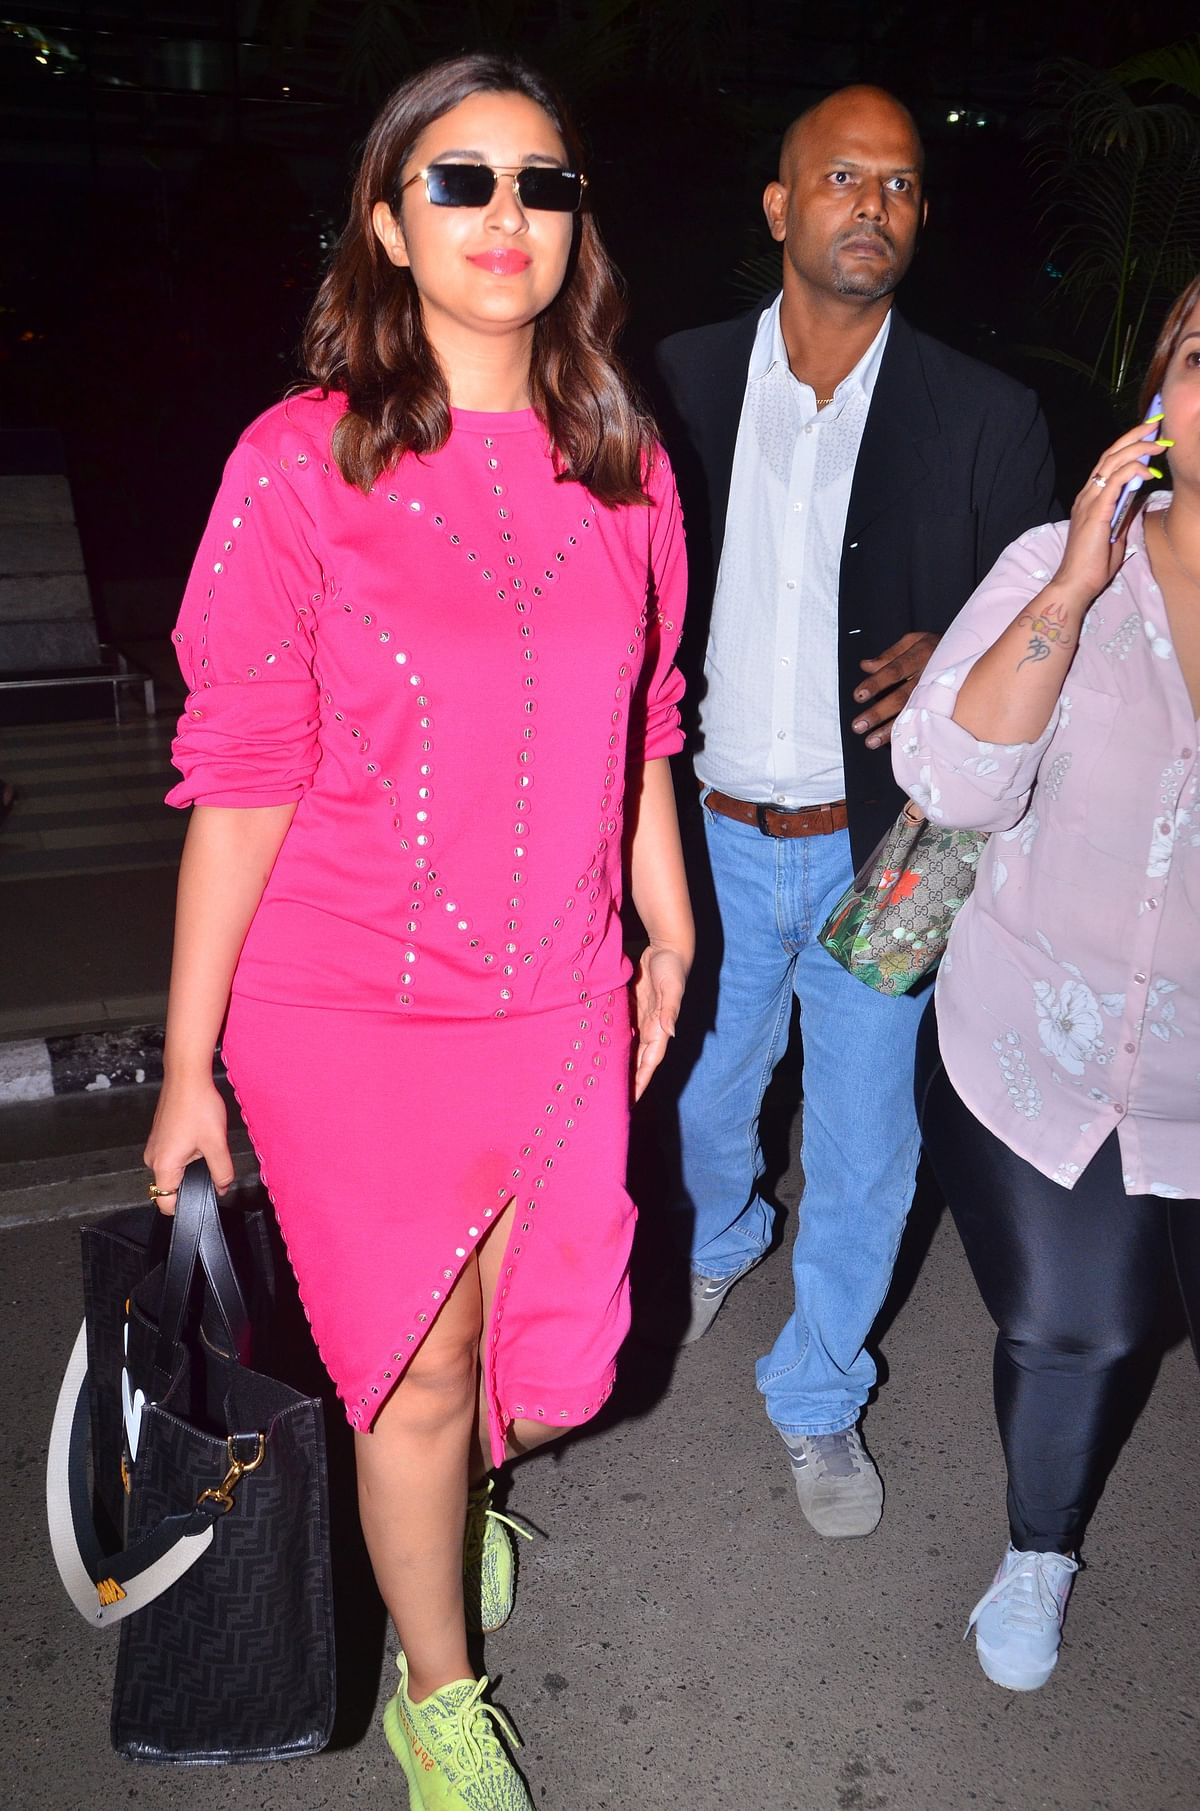 Parineeti Chopra who is busy promoting her film with Sidharth Malhotra was spotted at airport on her way back from Ahemdabad.